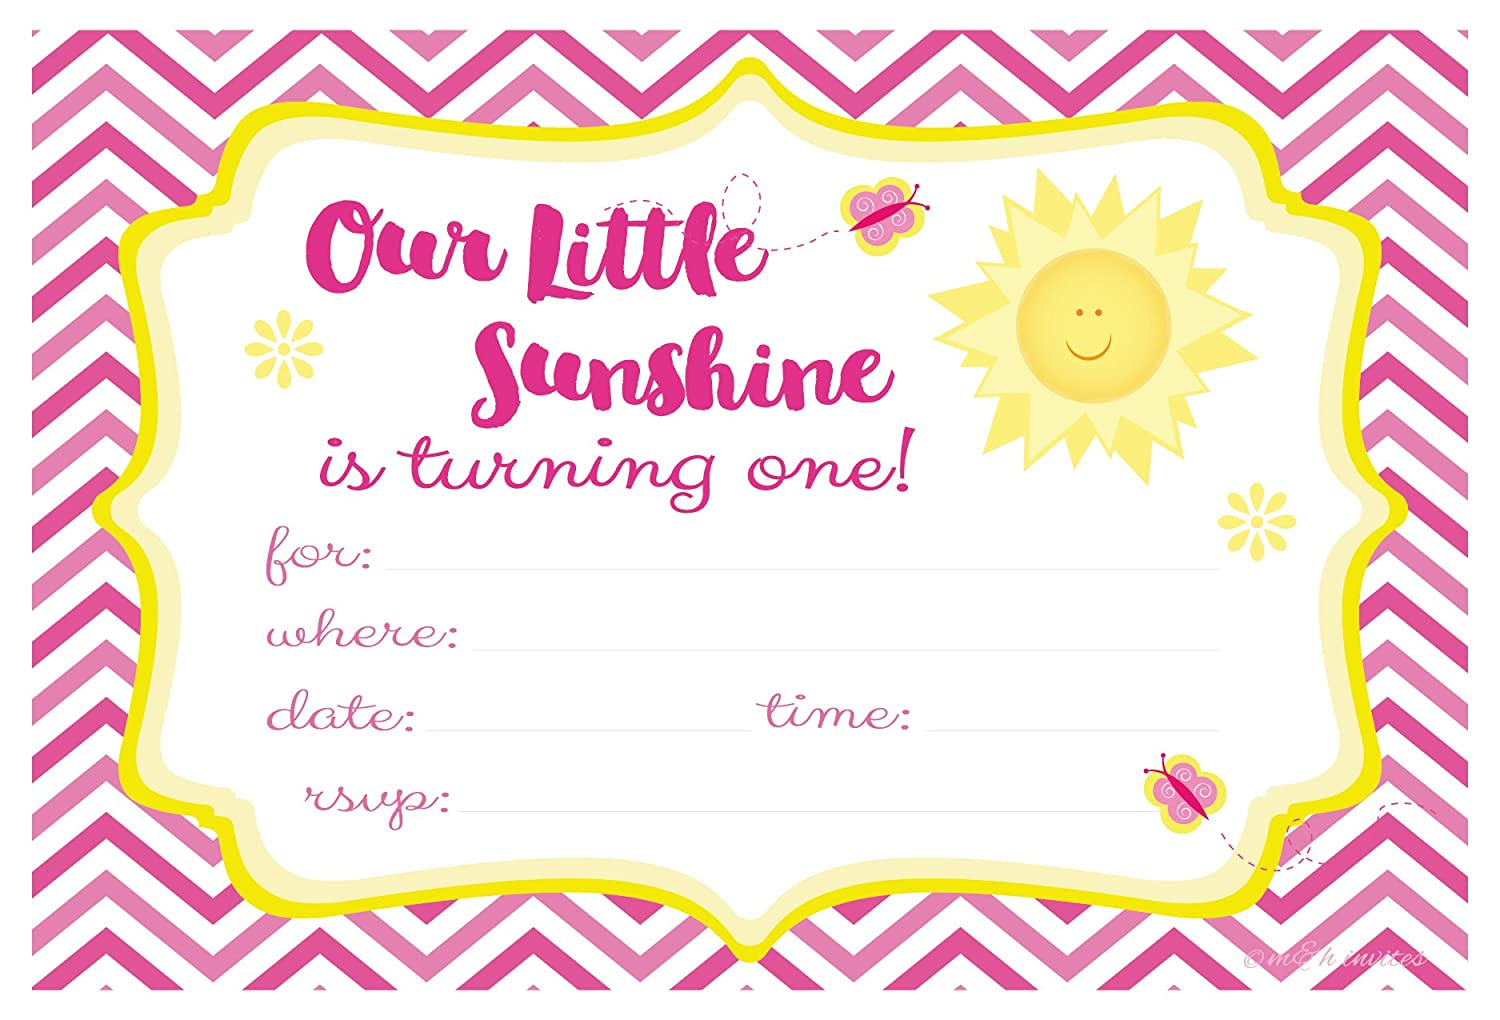 Our Little Sunshine First Birthday Party Invitations Fill In Style 20 Count With Envelopes